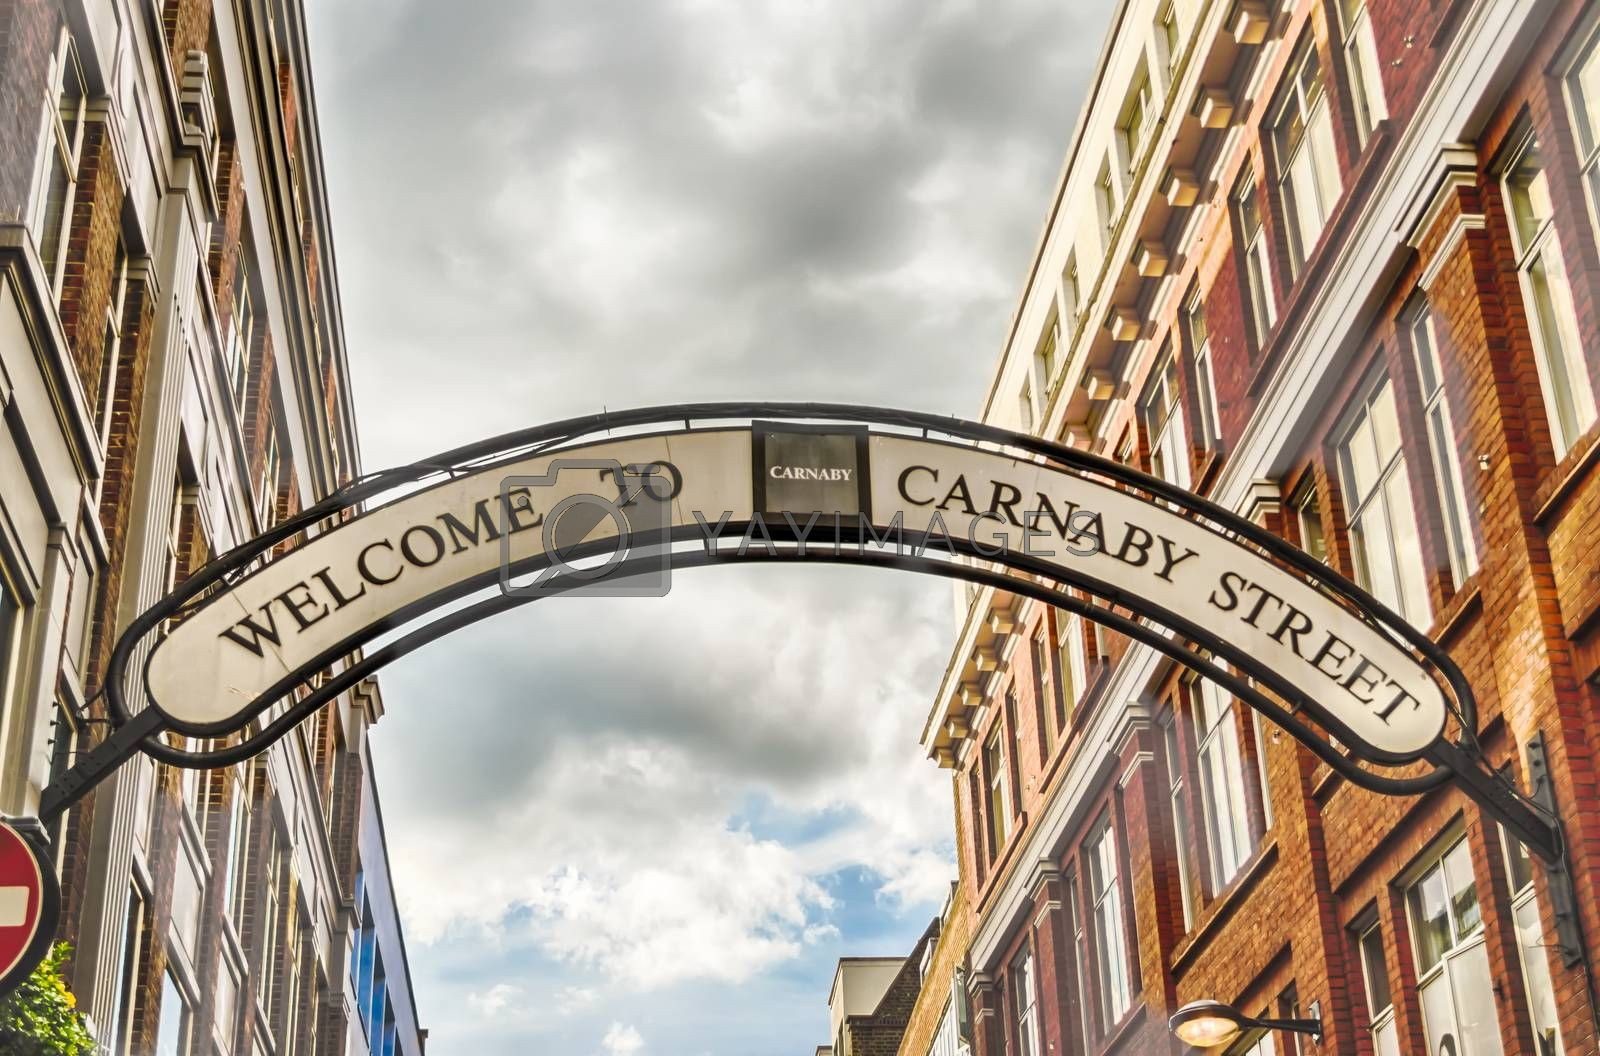 LONDON - MAY 28: Carnaby Street sign in London, UK on May 28, 2015. Carnaby Street is an iconic pedestrianised shopping street associated with swinging London of the 1960s.